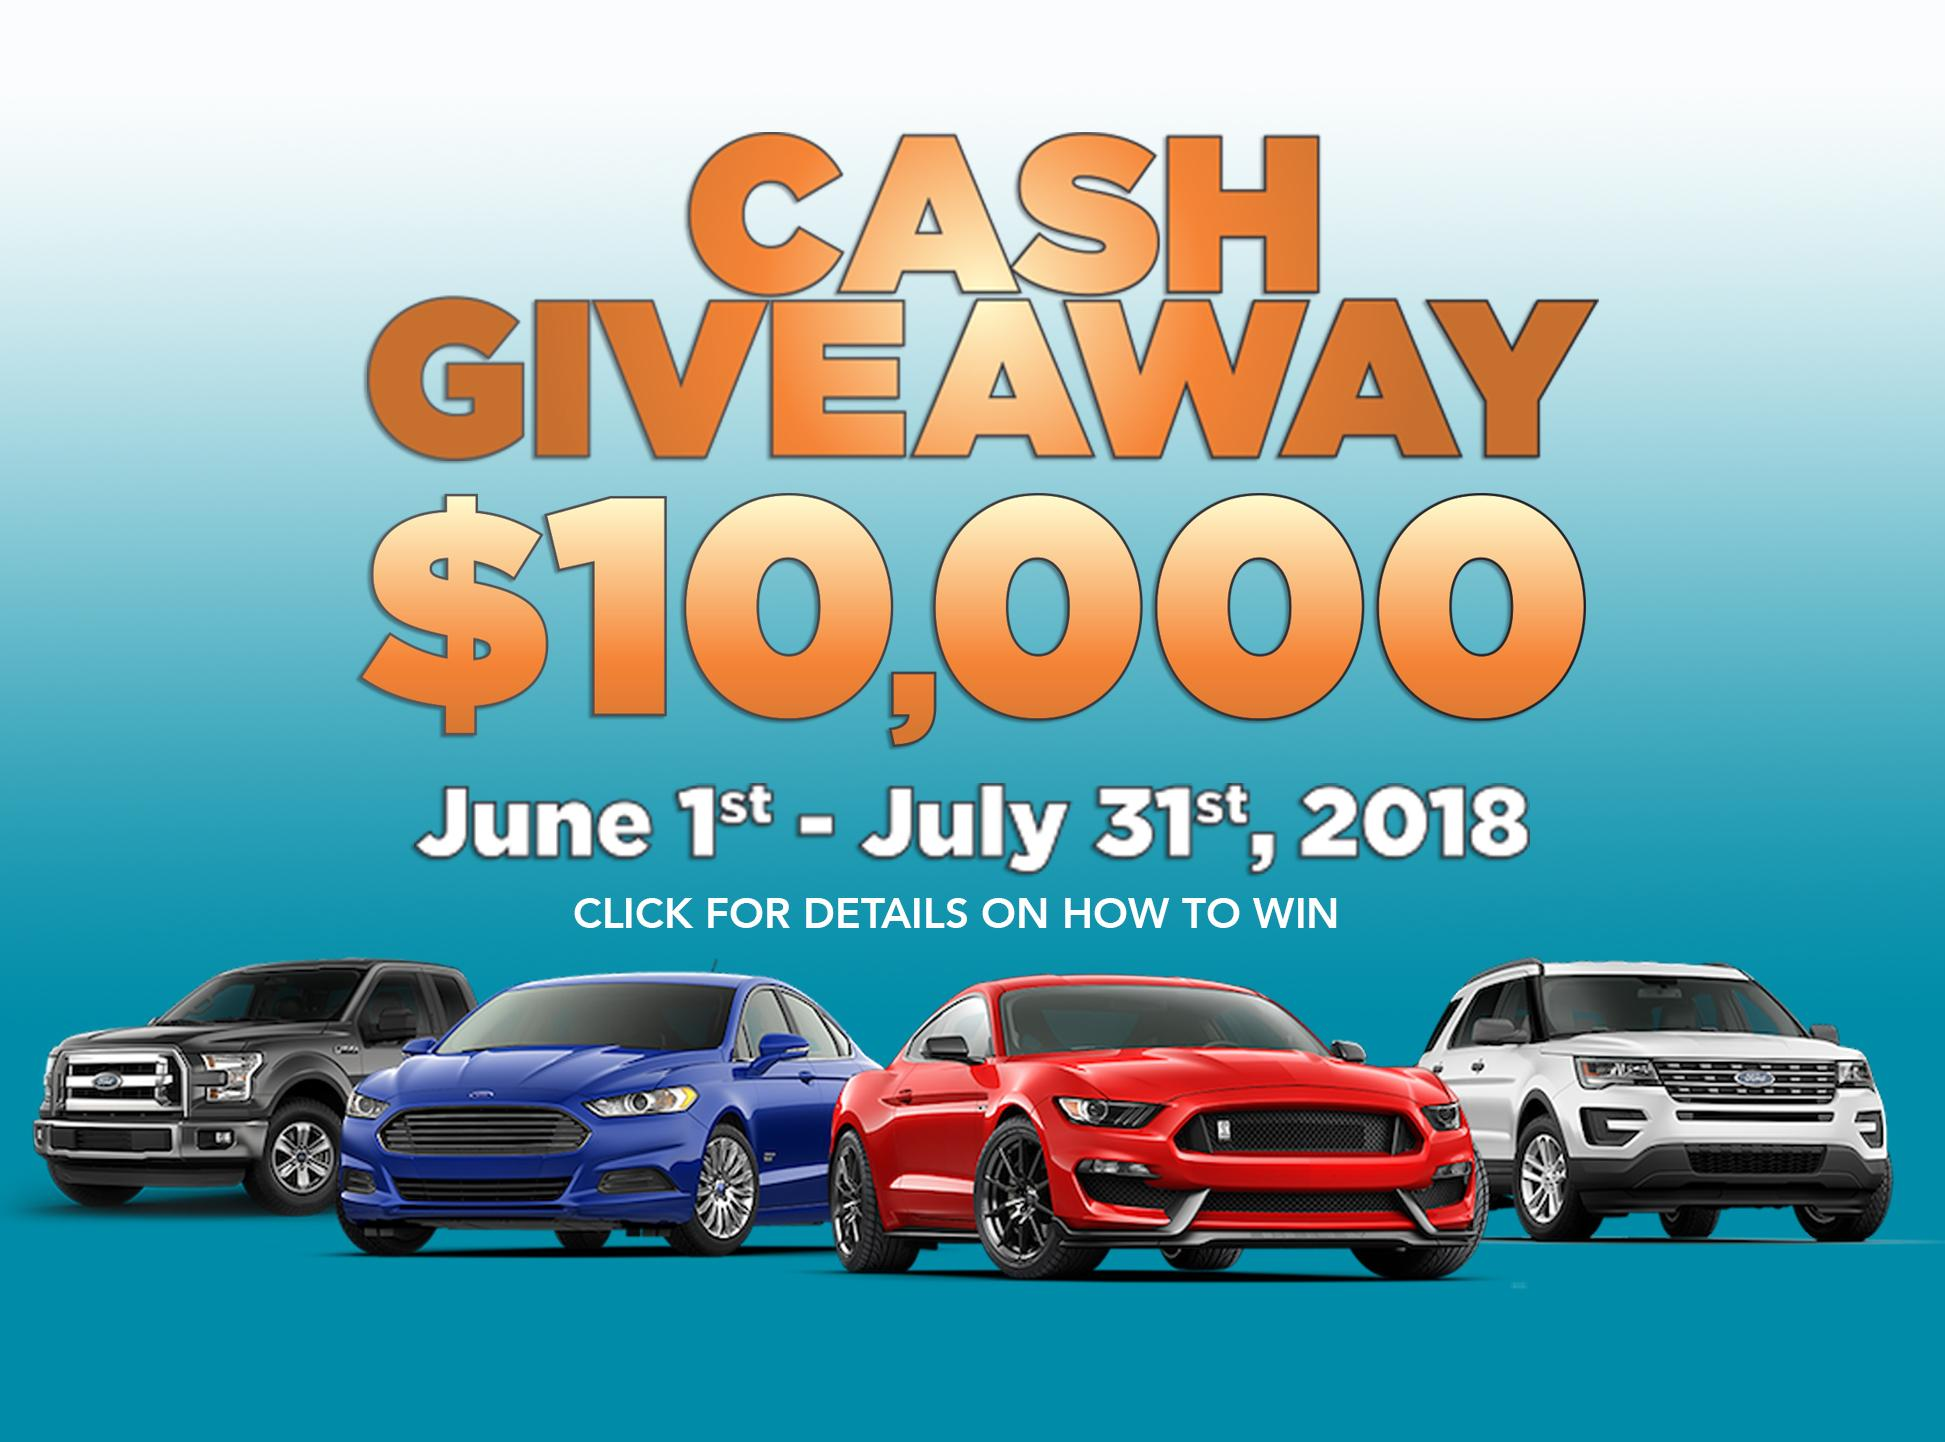 10,000 Cash Giveaway - Discovery Ford